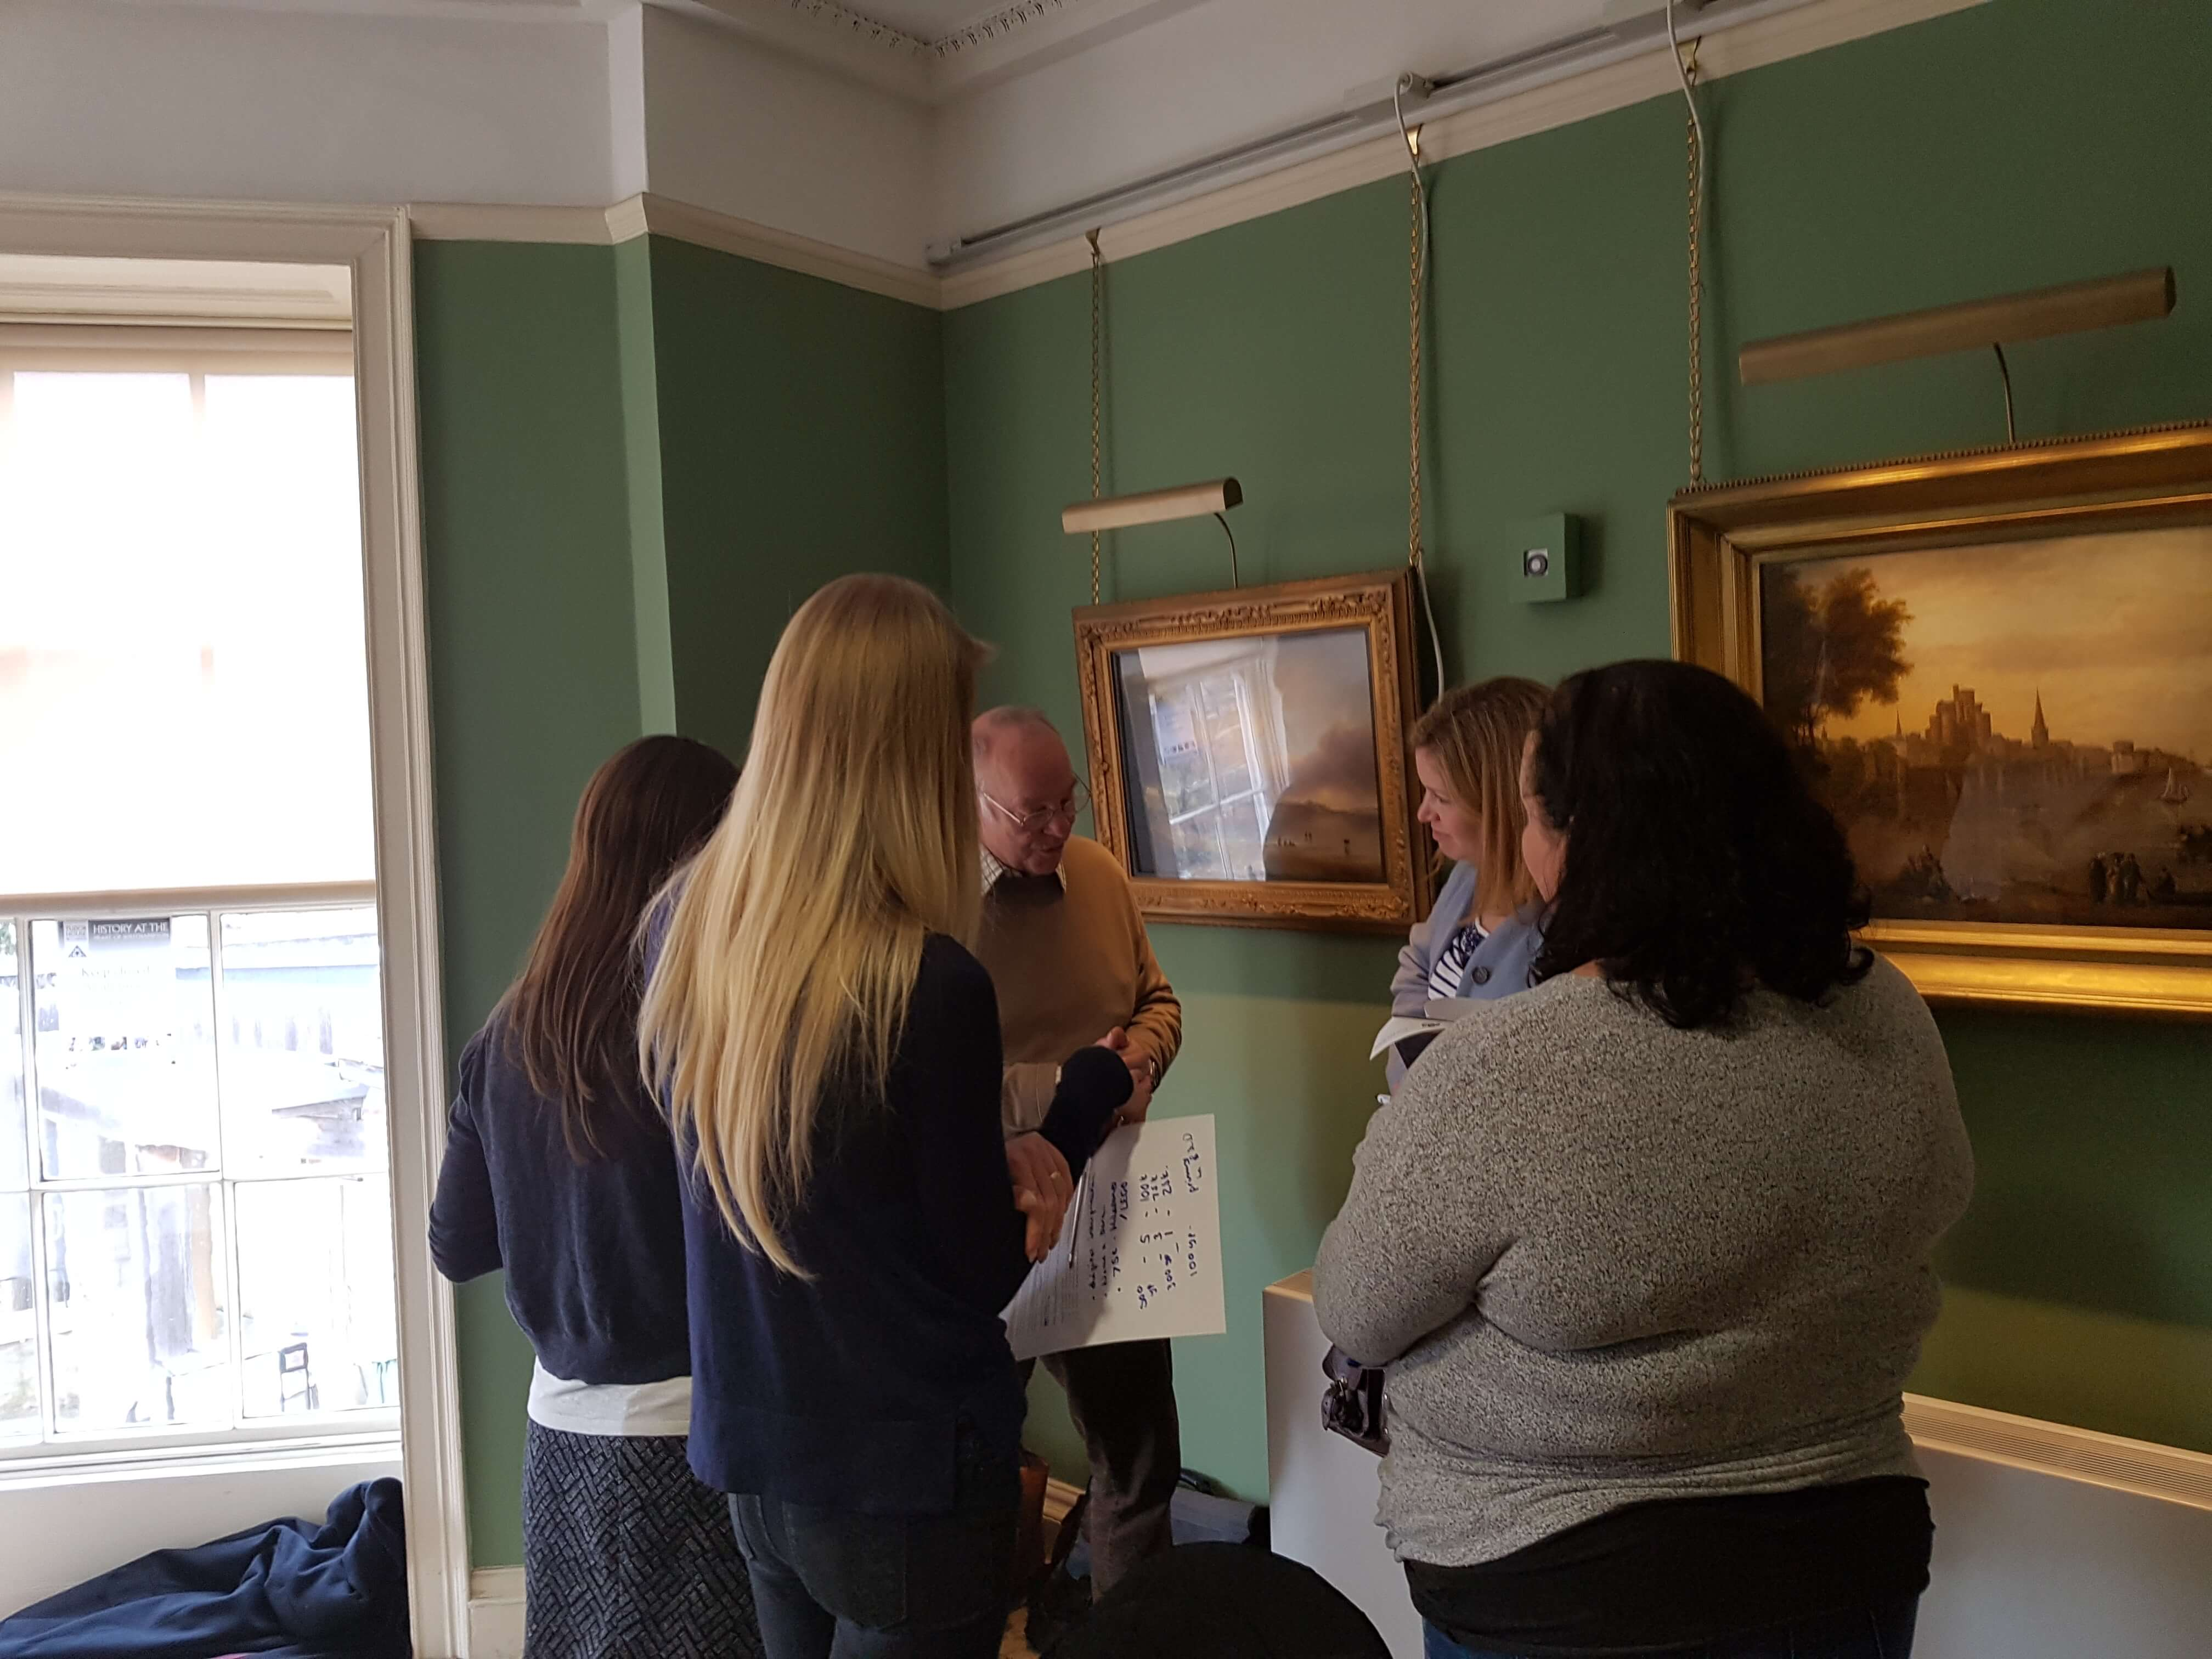 A group of museum fundraisers take part in a group activity during a training session